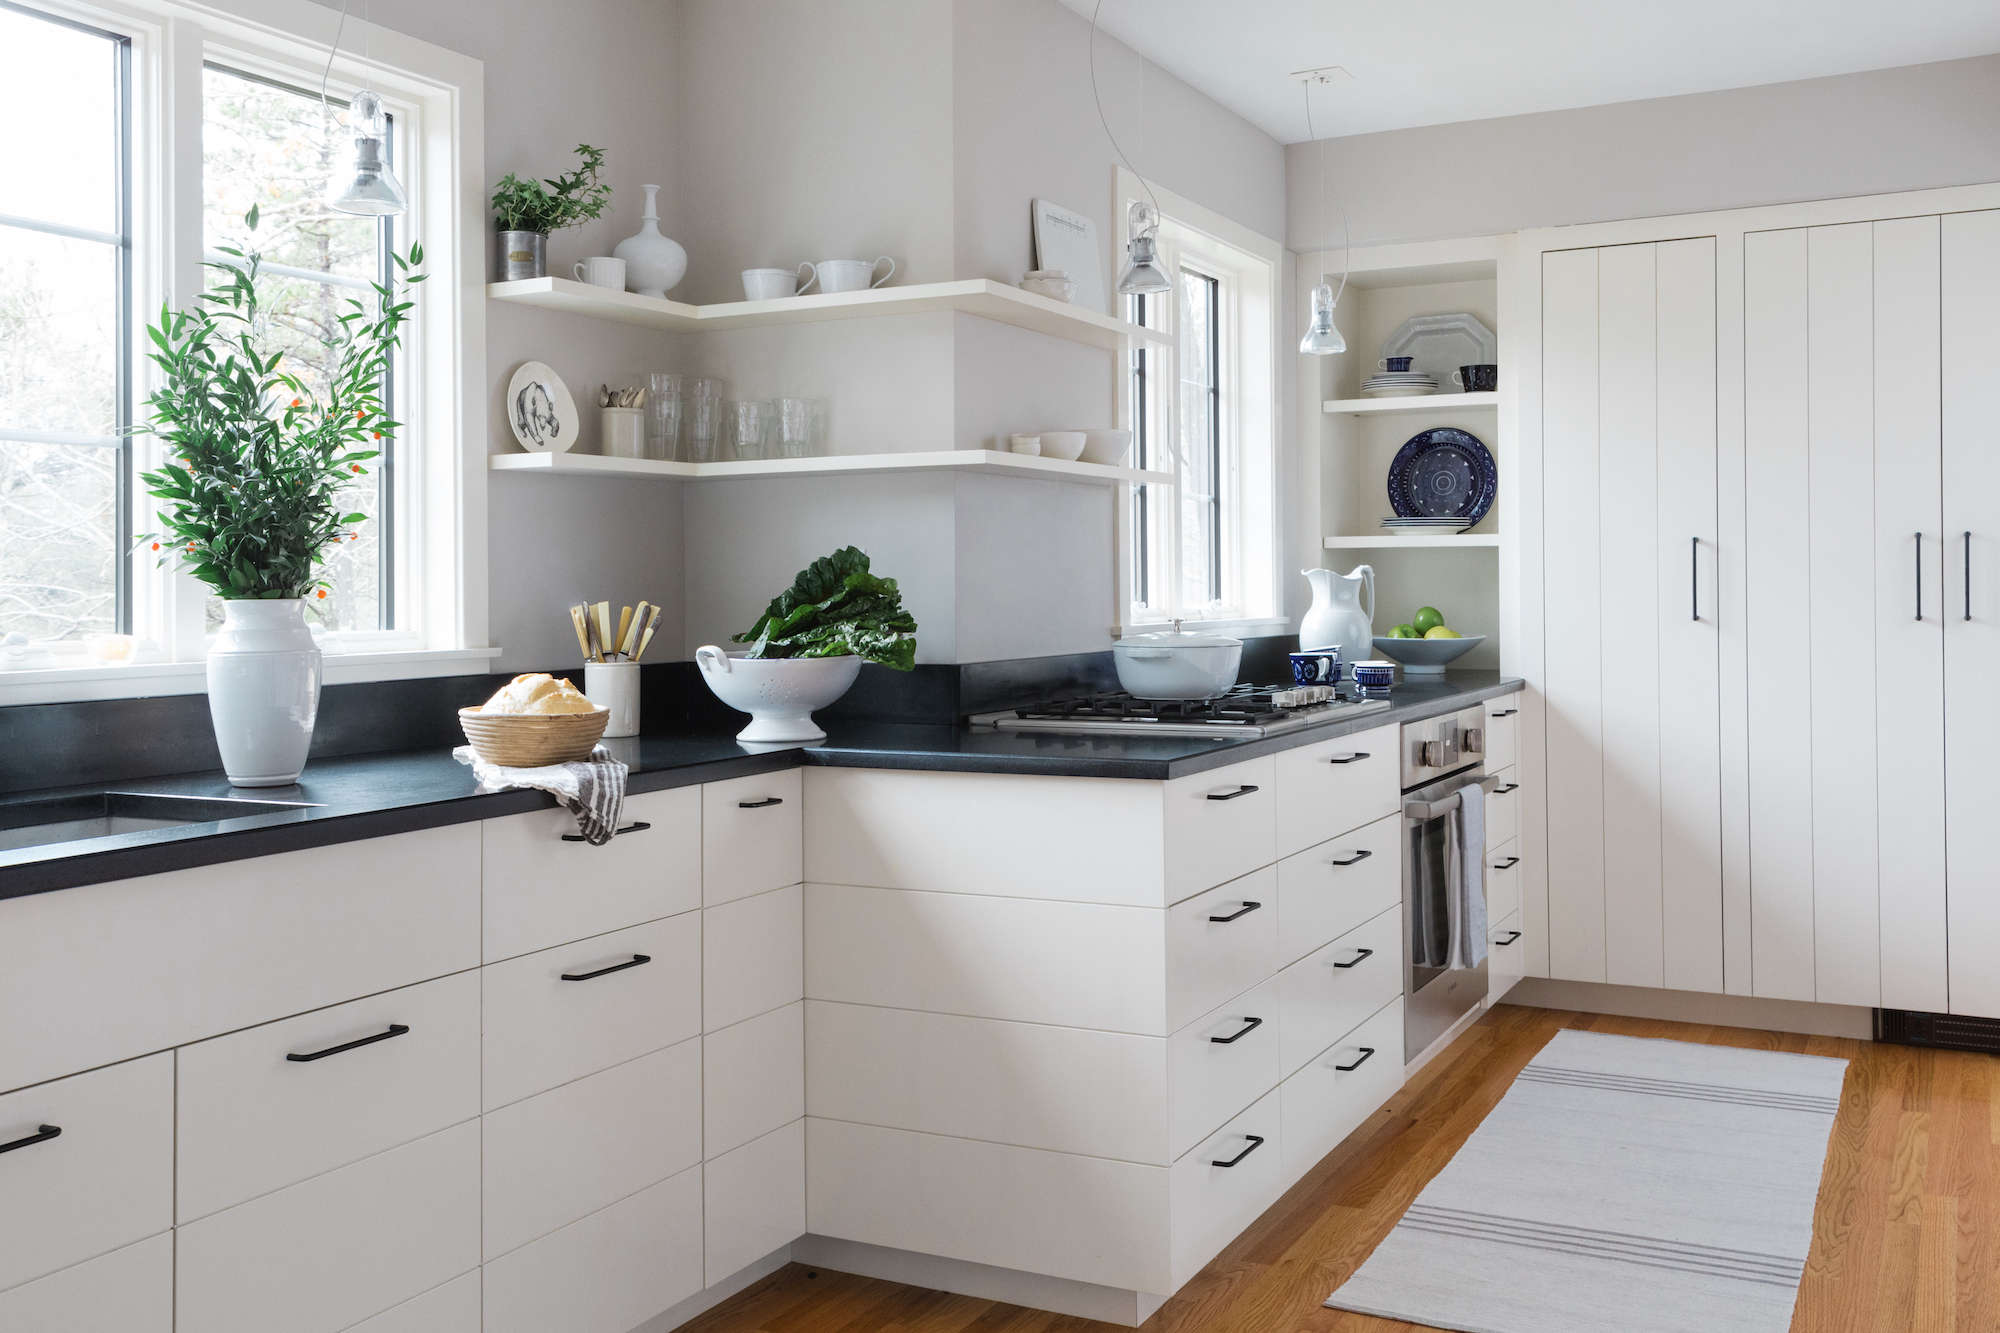 bosch kitchen knives one three ways a scandi with home appliances scandinavian inspired by remodelista